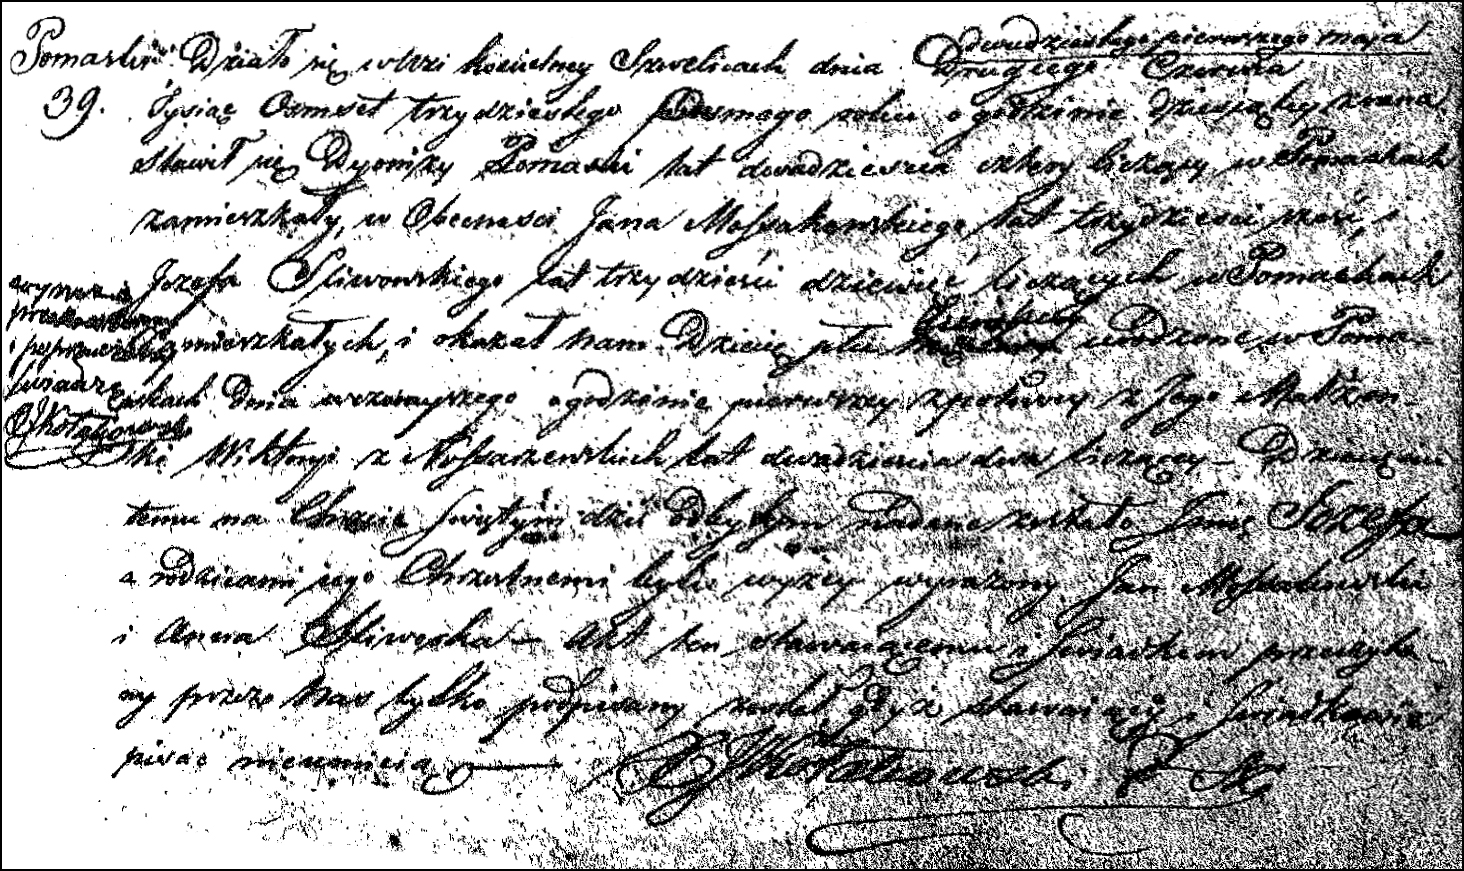 Birth and Baptismal Record for Józefa Pomaska - 1838